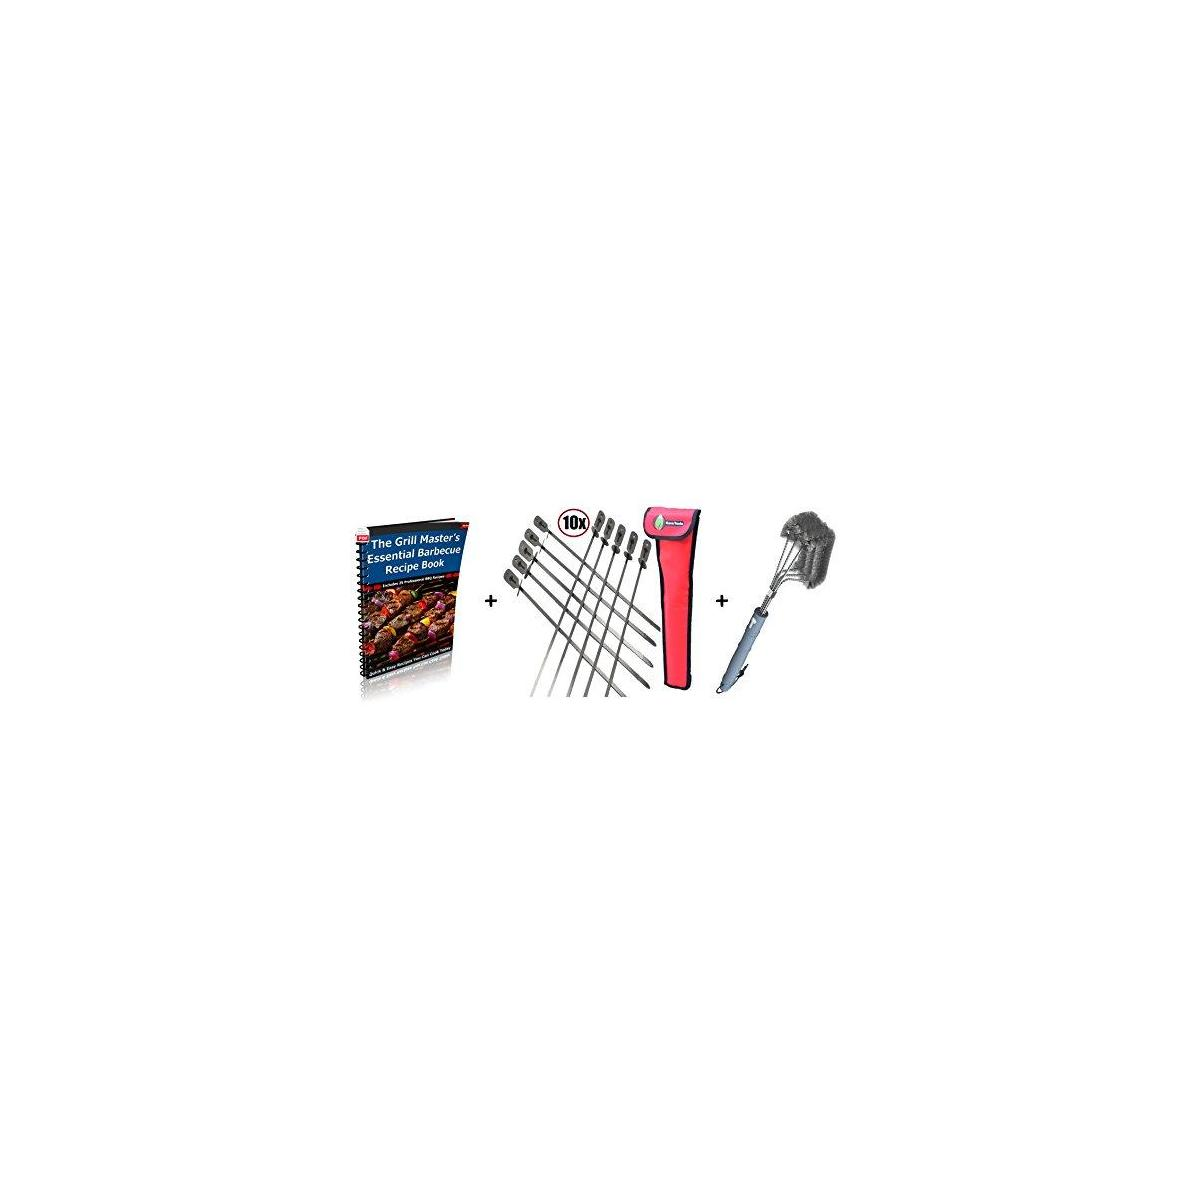 Skewers Set Extra Long + BBQ Grill Brush - Improved 100% Rust Proof Design - Stainless Steel Wire Bristle with Strength Clip for Cleaning Char Broil Weber Porcelain and Infrared Barbecue Grates